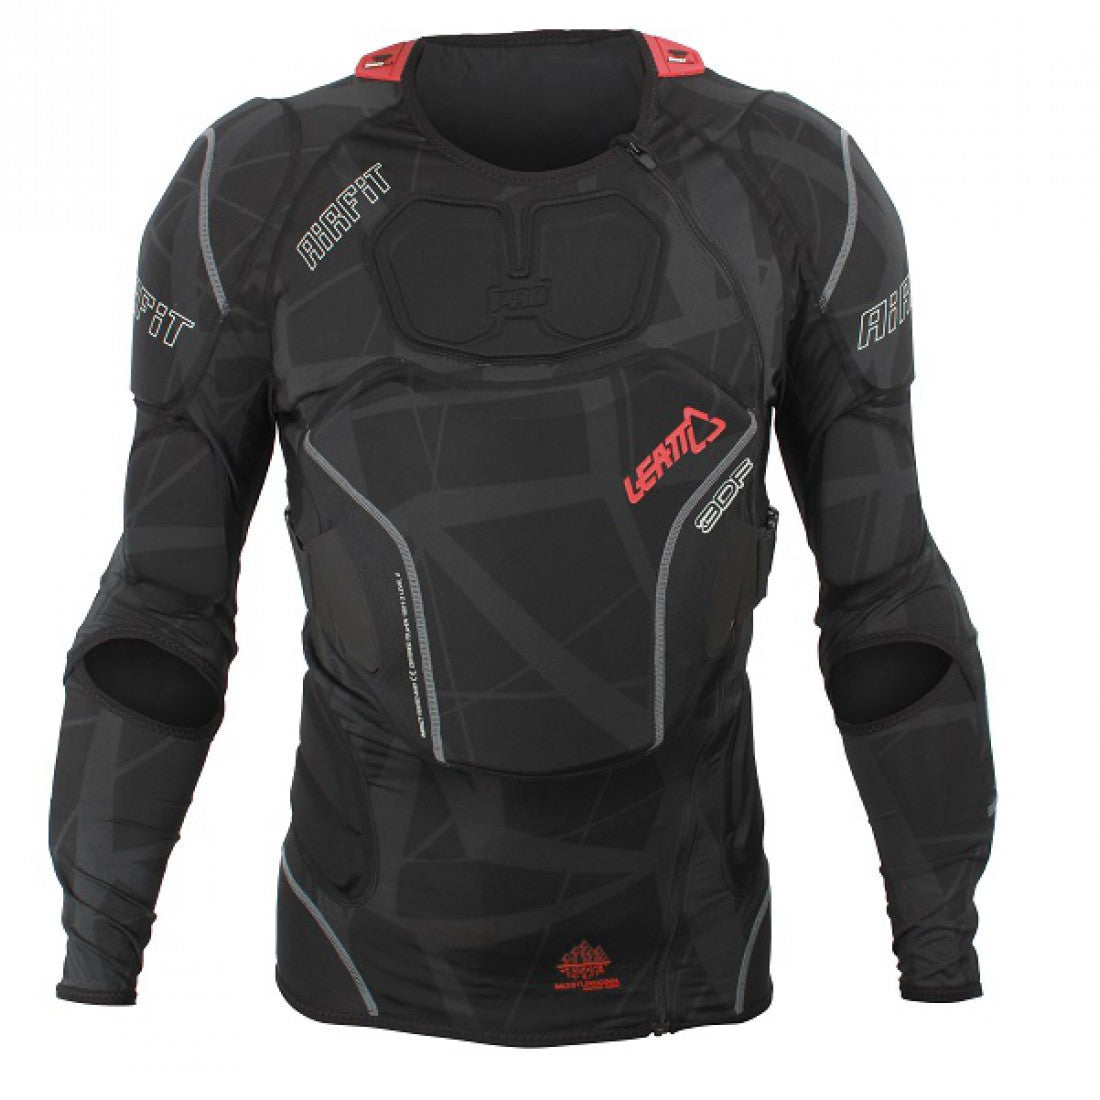 Protection: LEATT BODY PROTECTOR 3DF BLACK